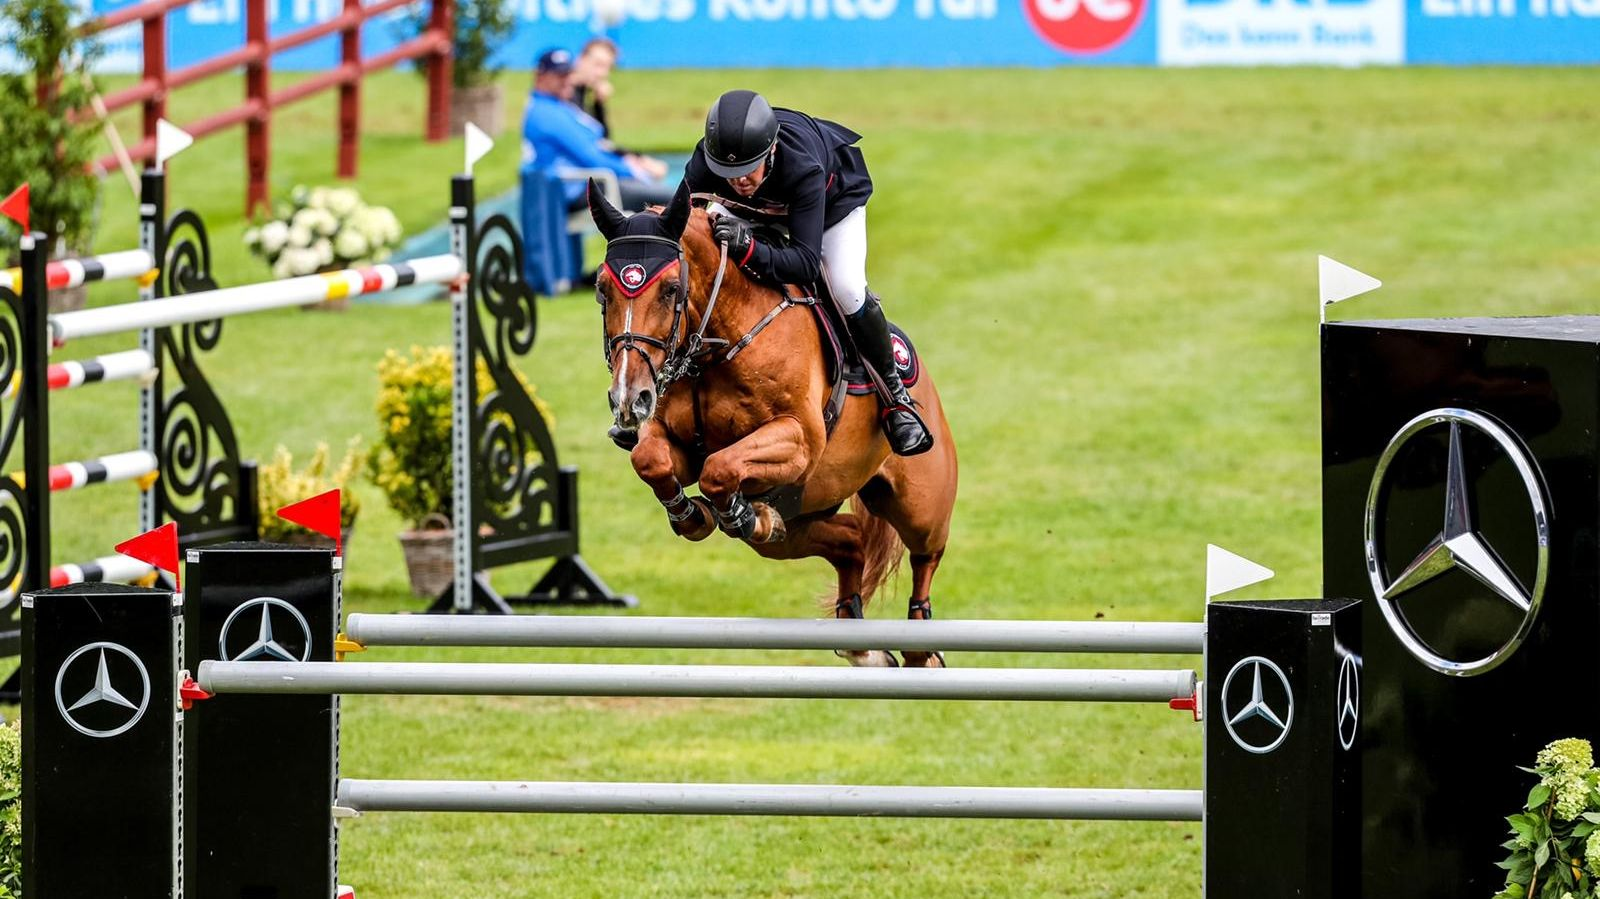 A 5* Win in Hamburg & Success at Chepstow